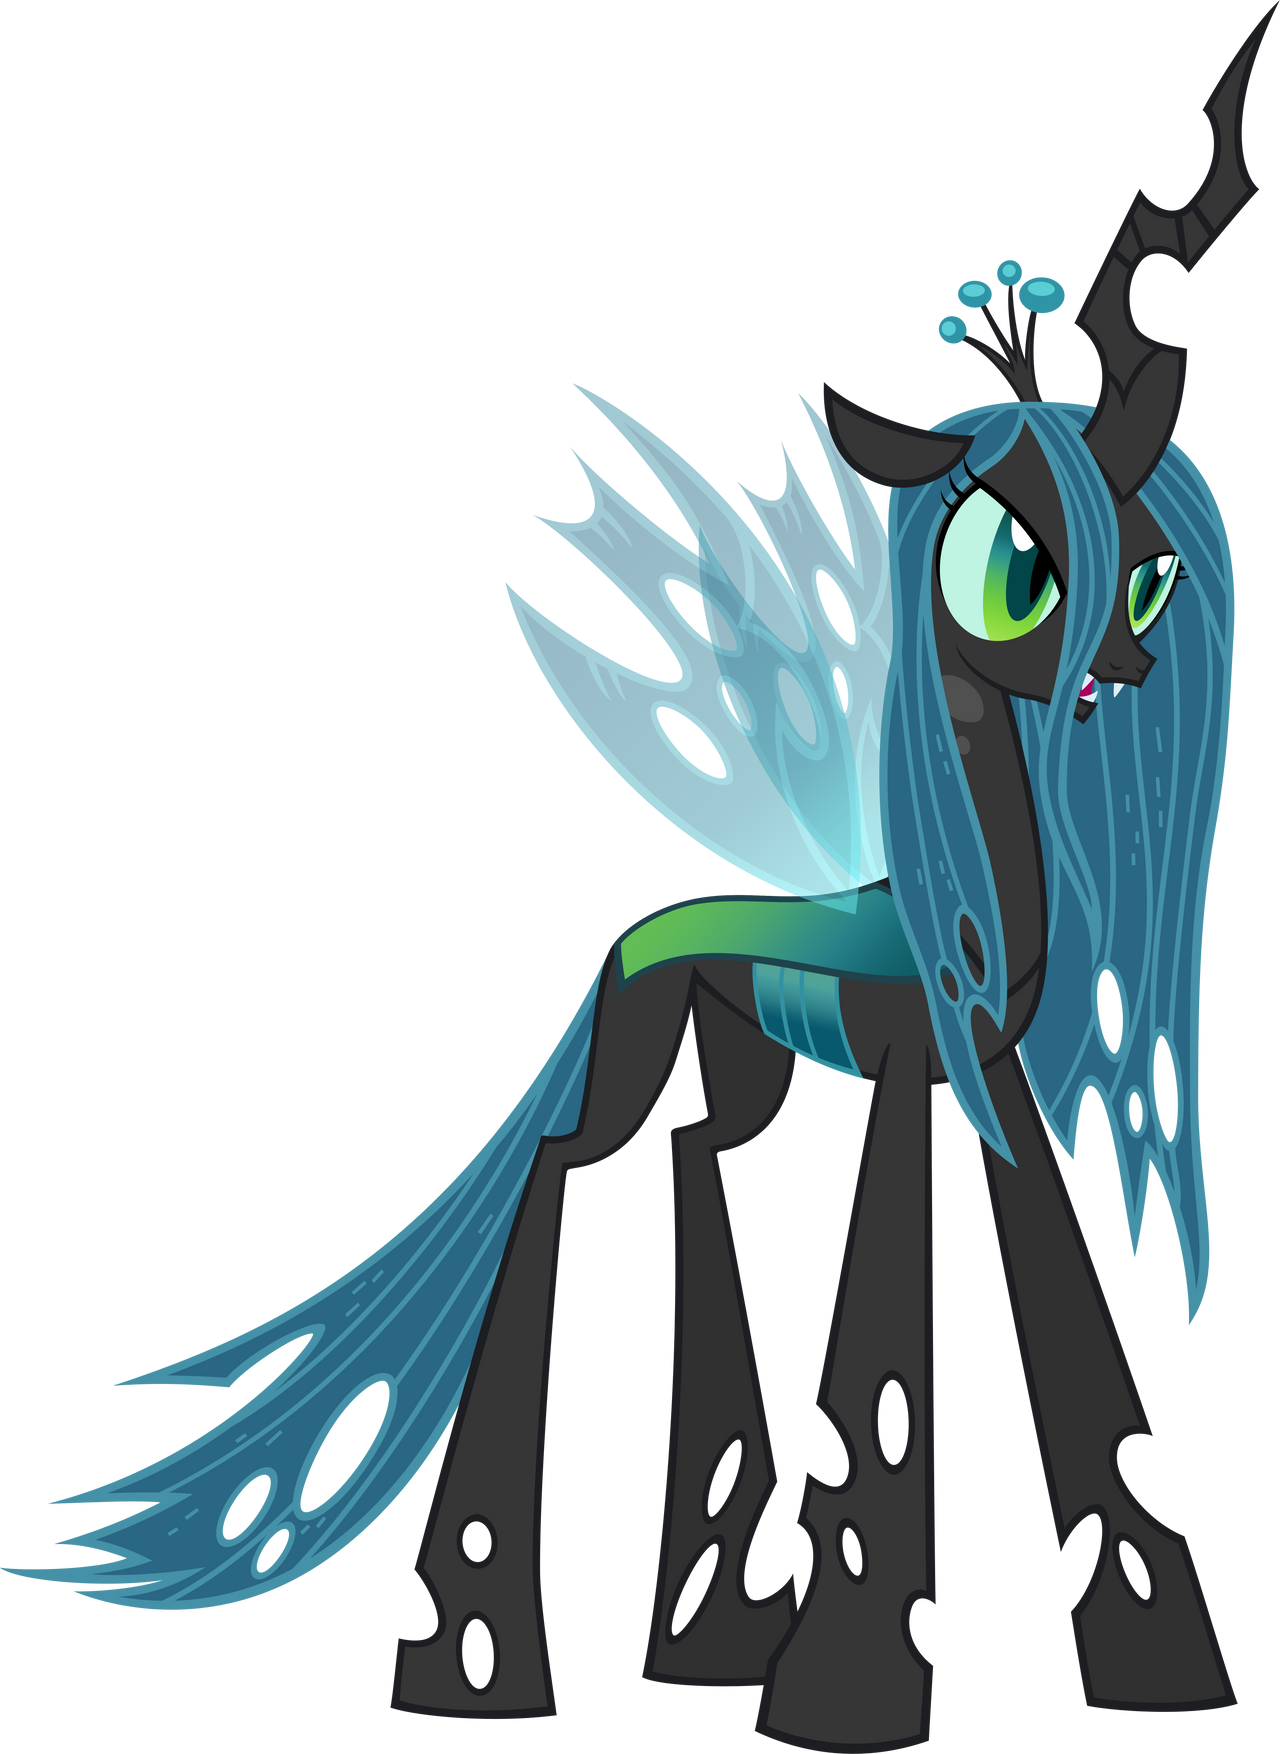 Queen Chrysalis by MoongazePonies on DeviantArt